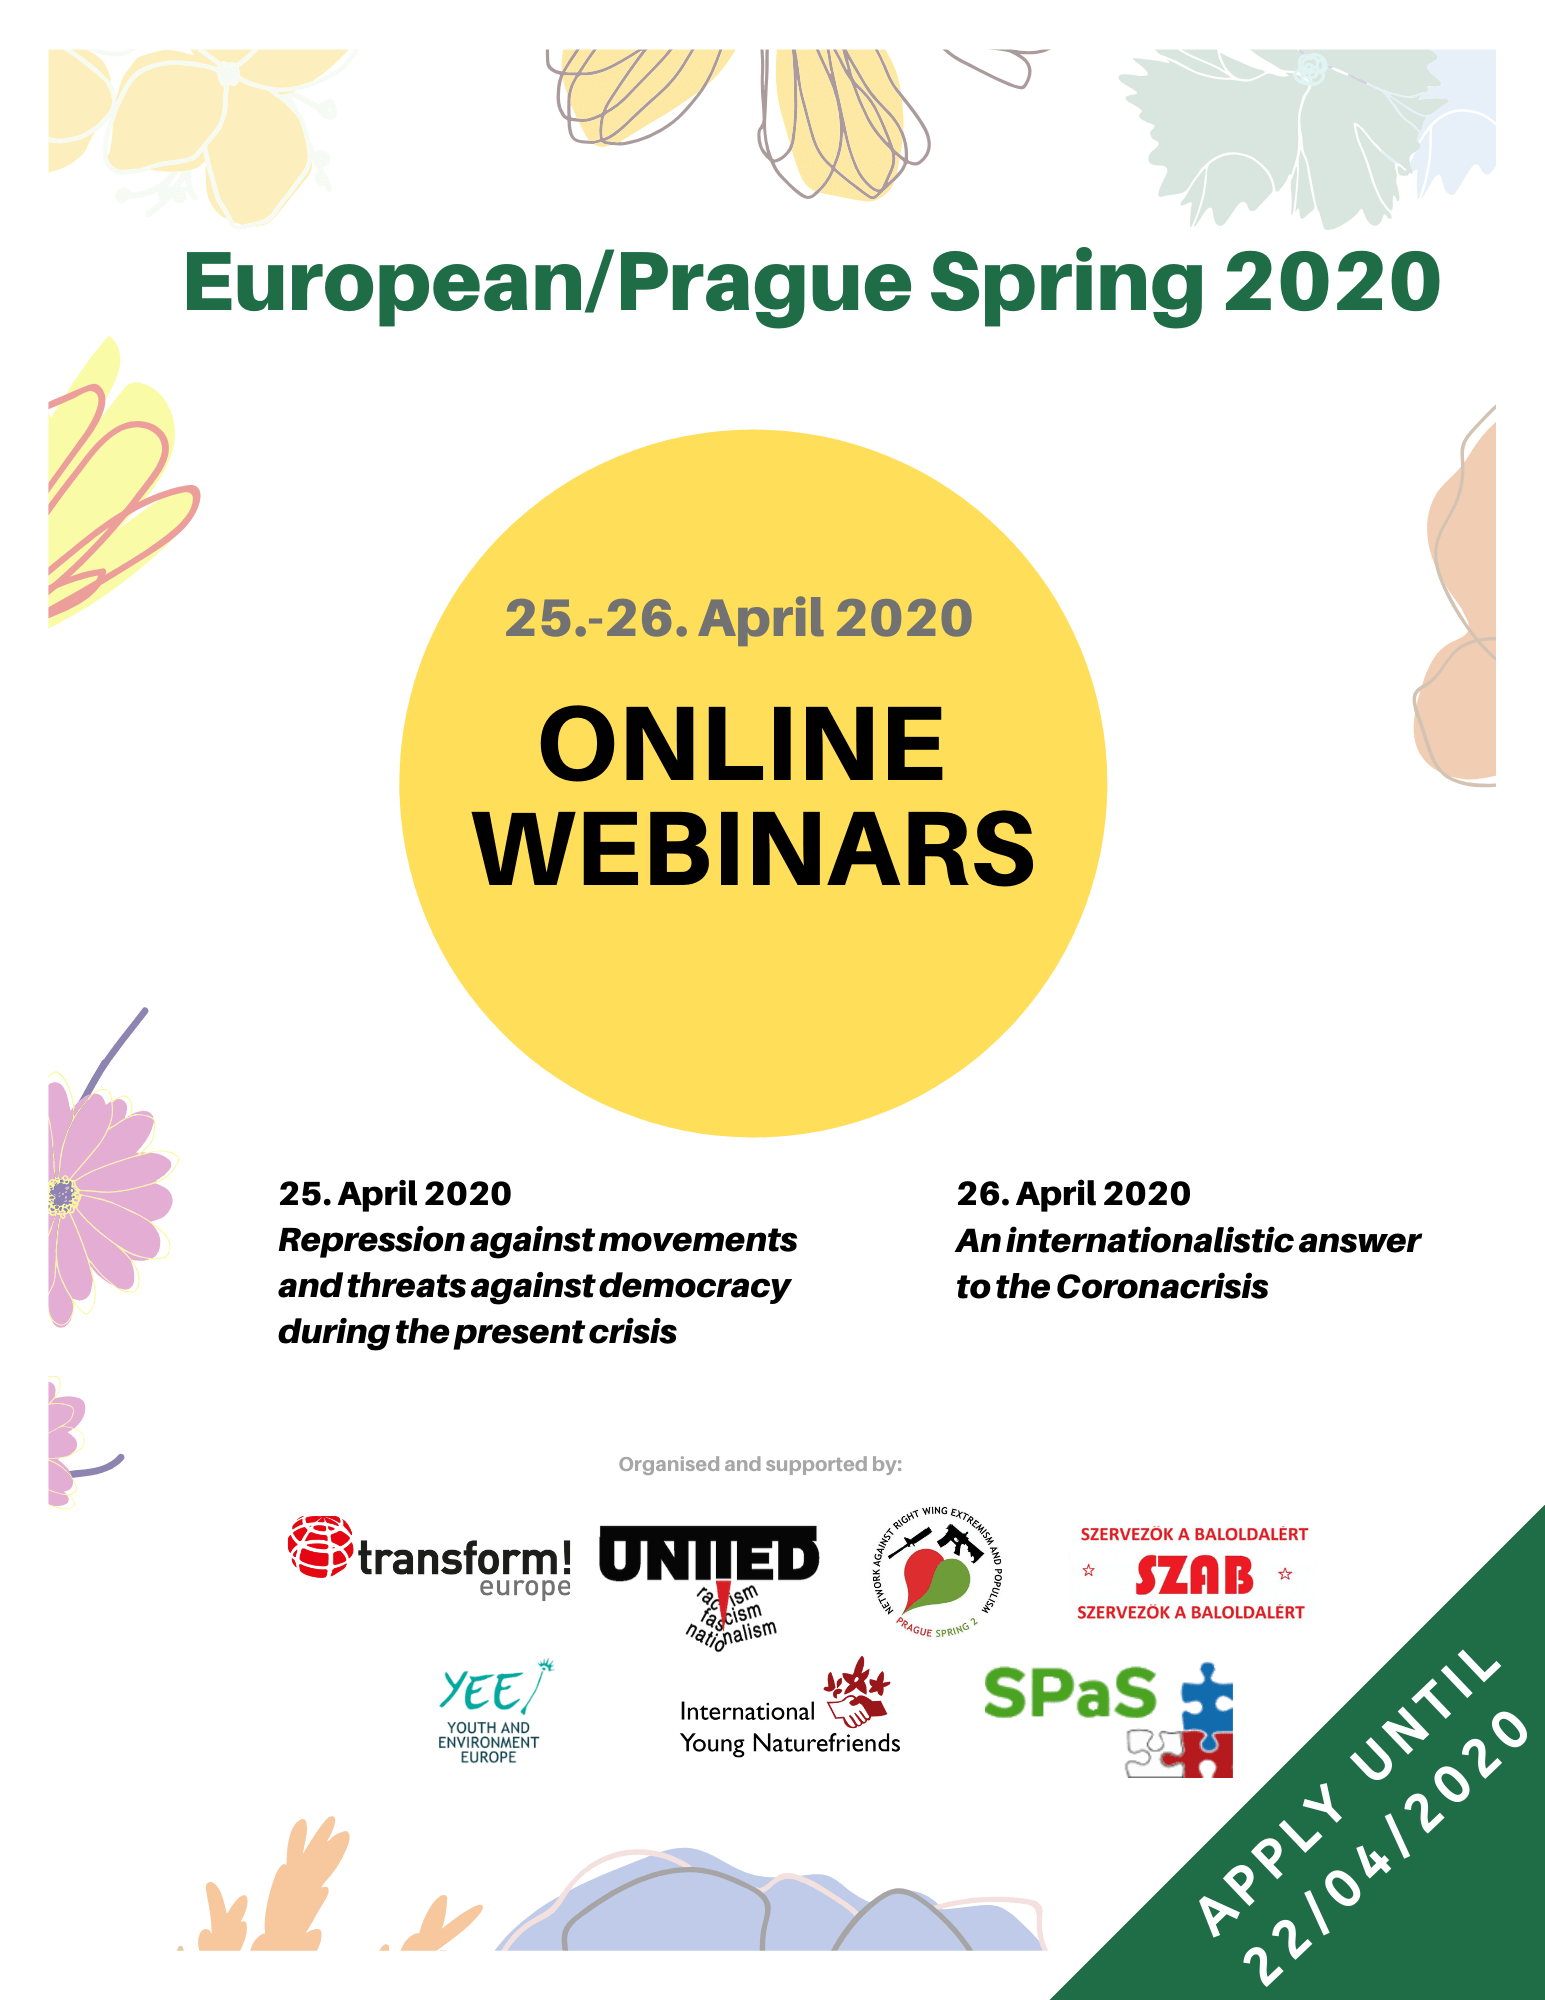 European_Prague Spring 2020 webinars